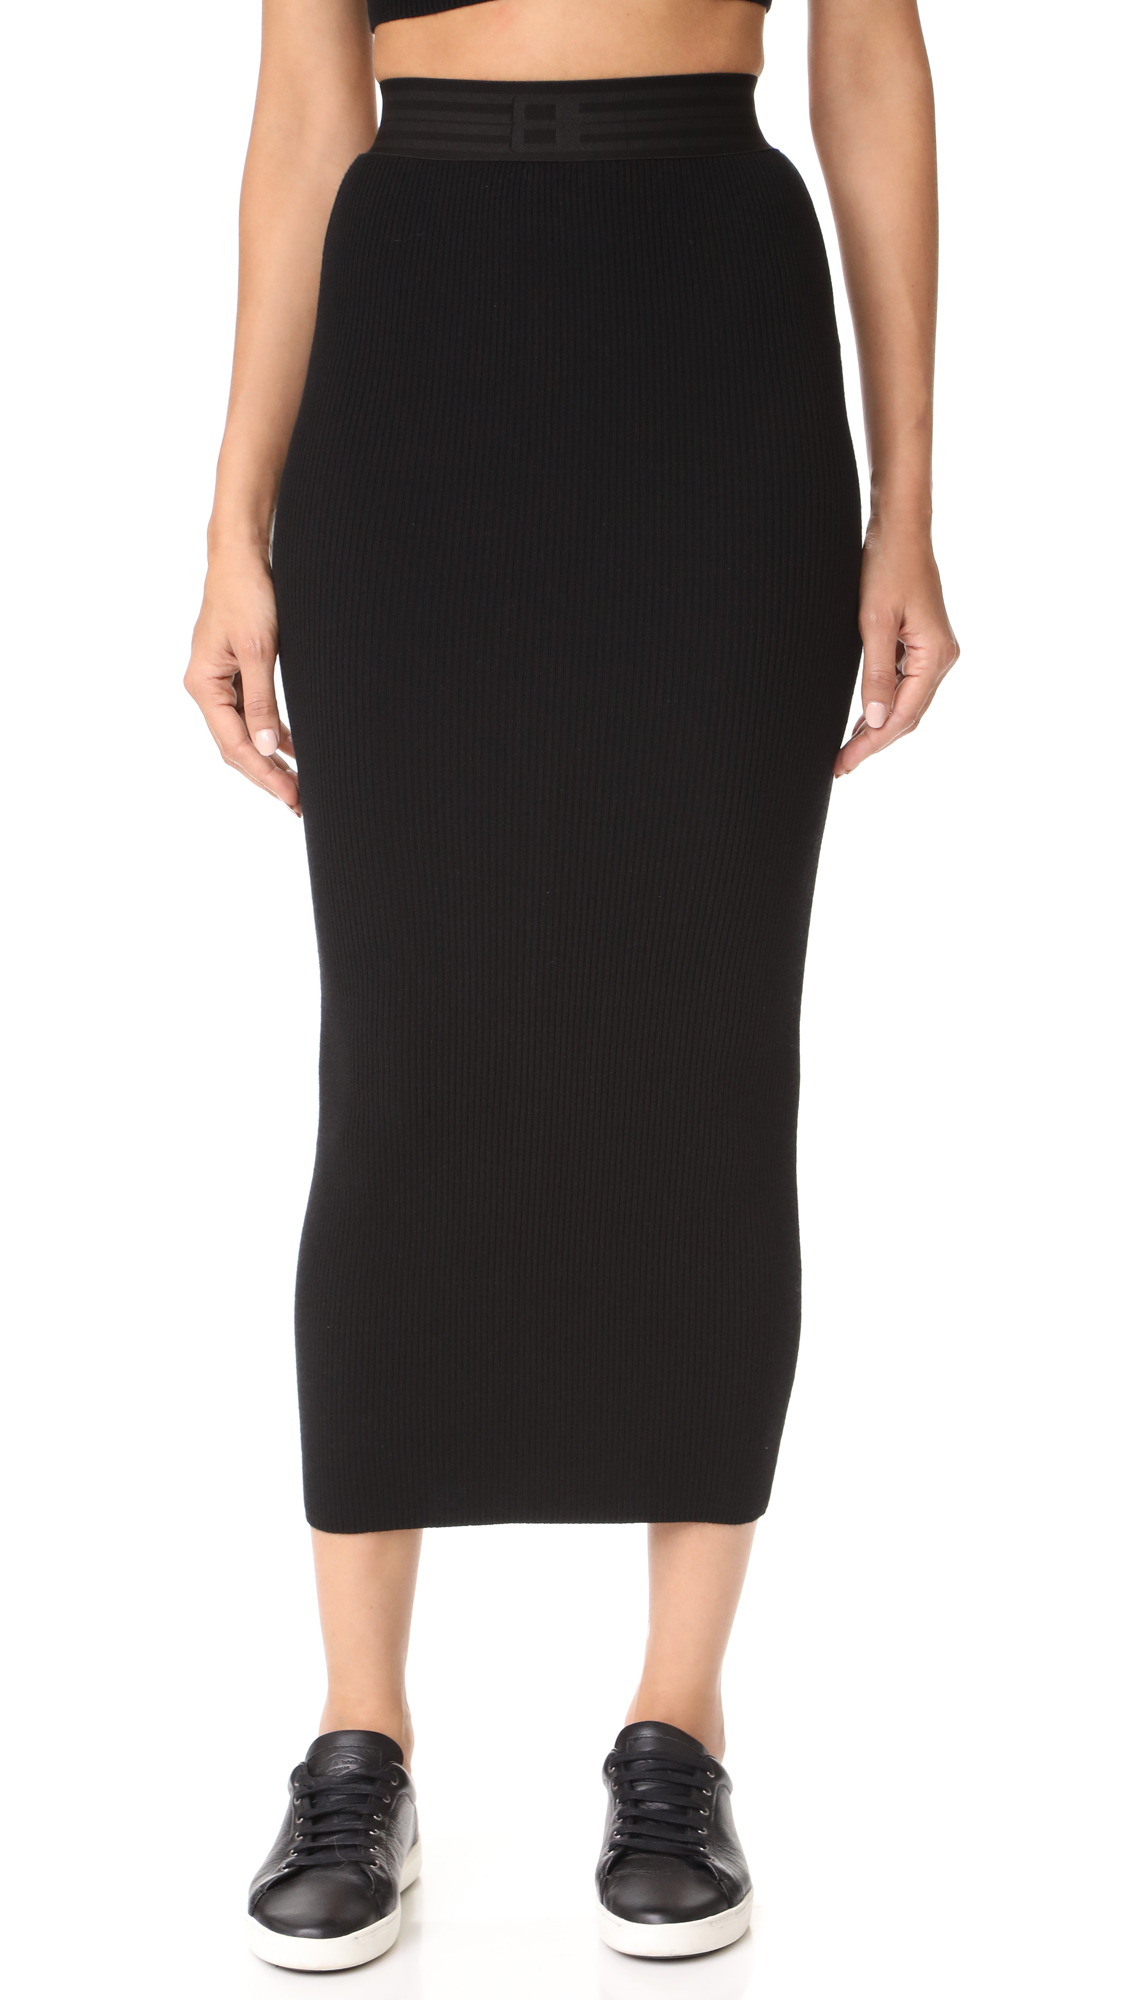 Baja East Ribbed Knit Skirt - Black